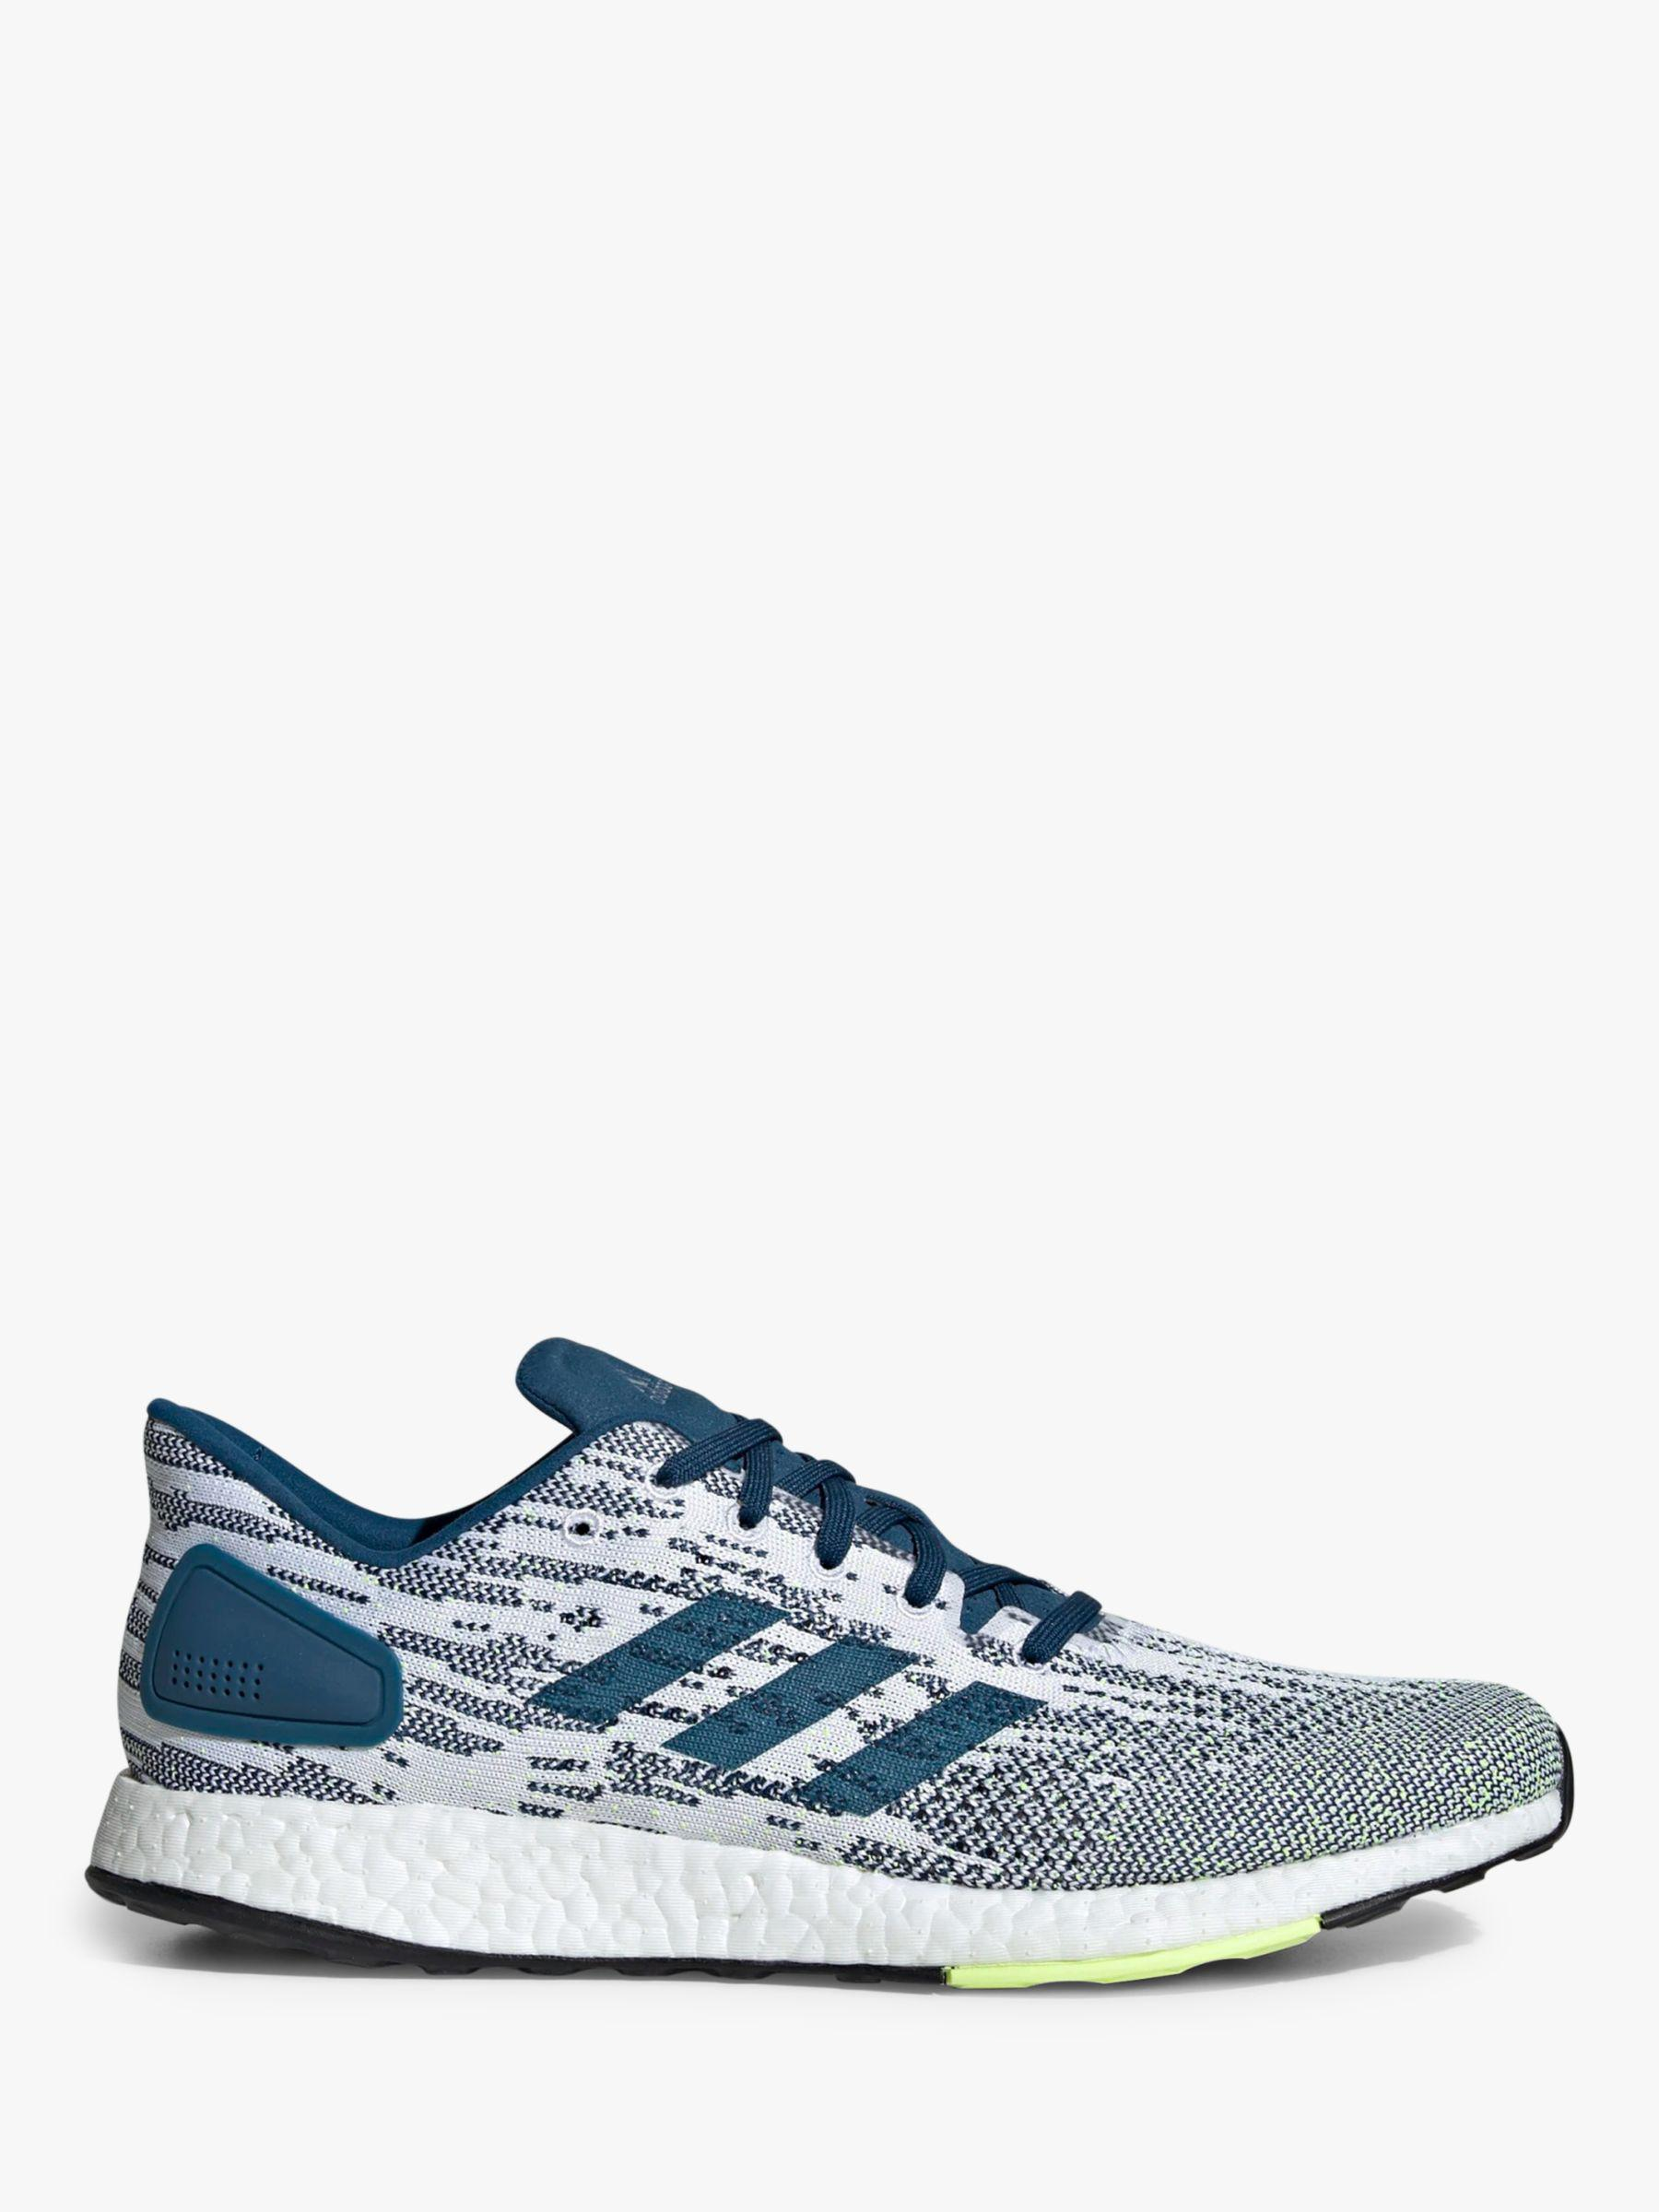 184acc55c572e adidas Pureboost Dpr Men s Running Shoes in Blue for Men - Lyst